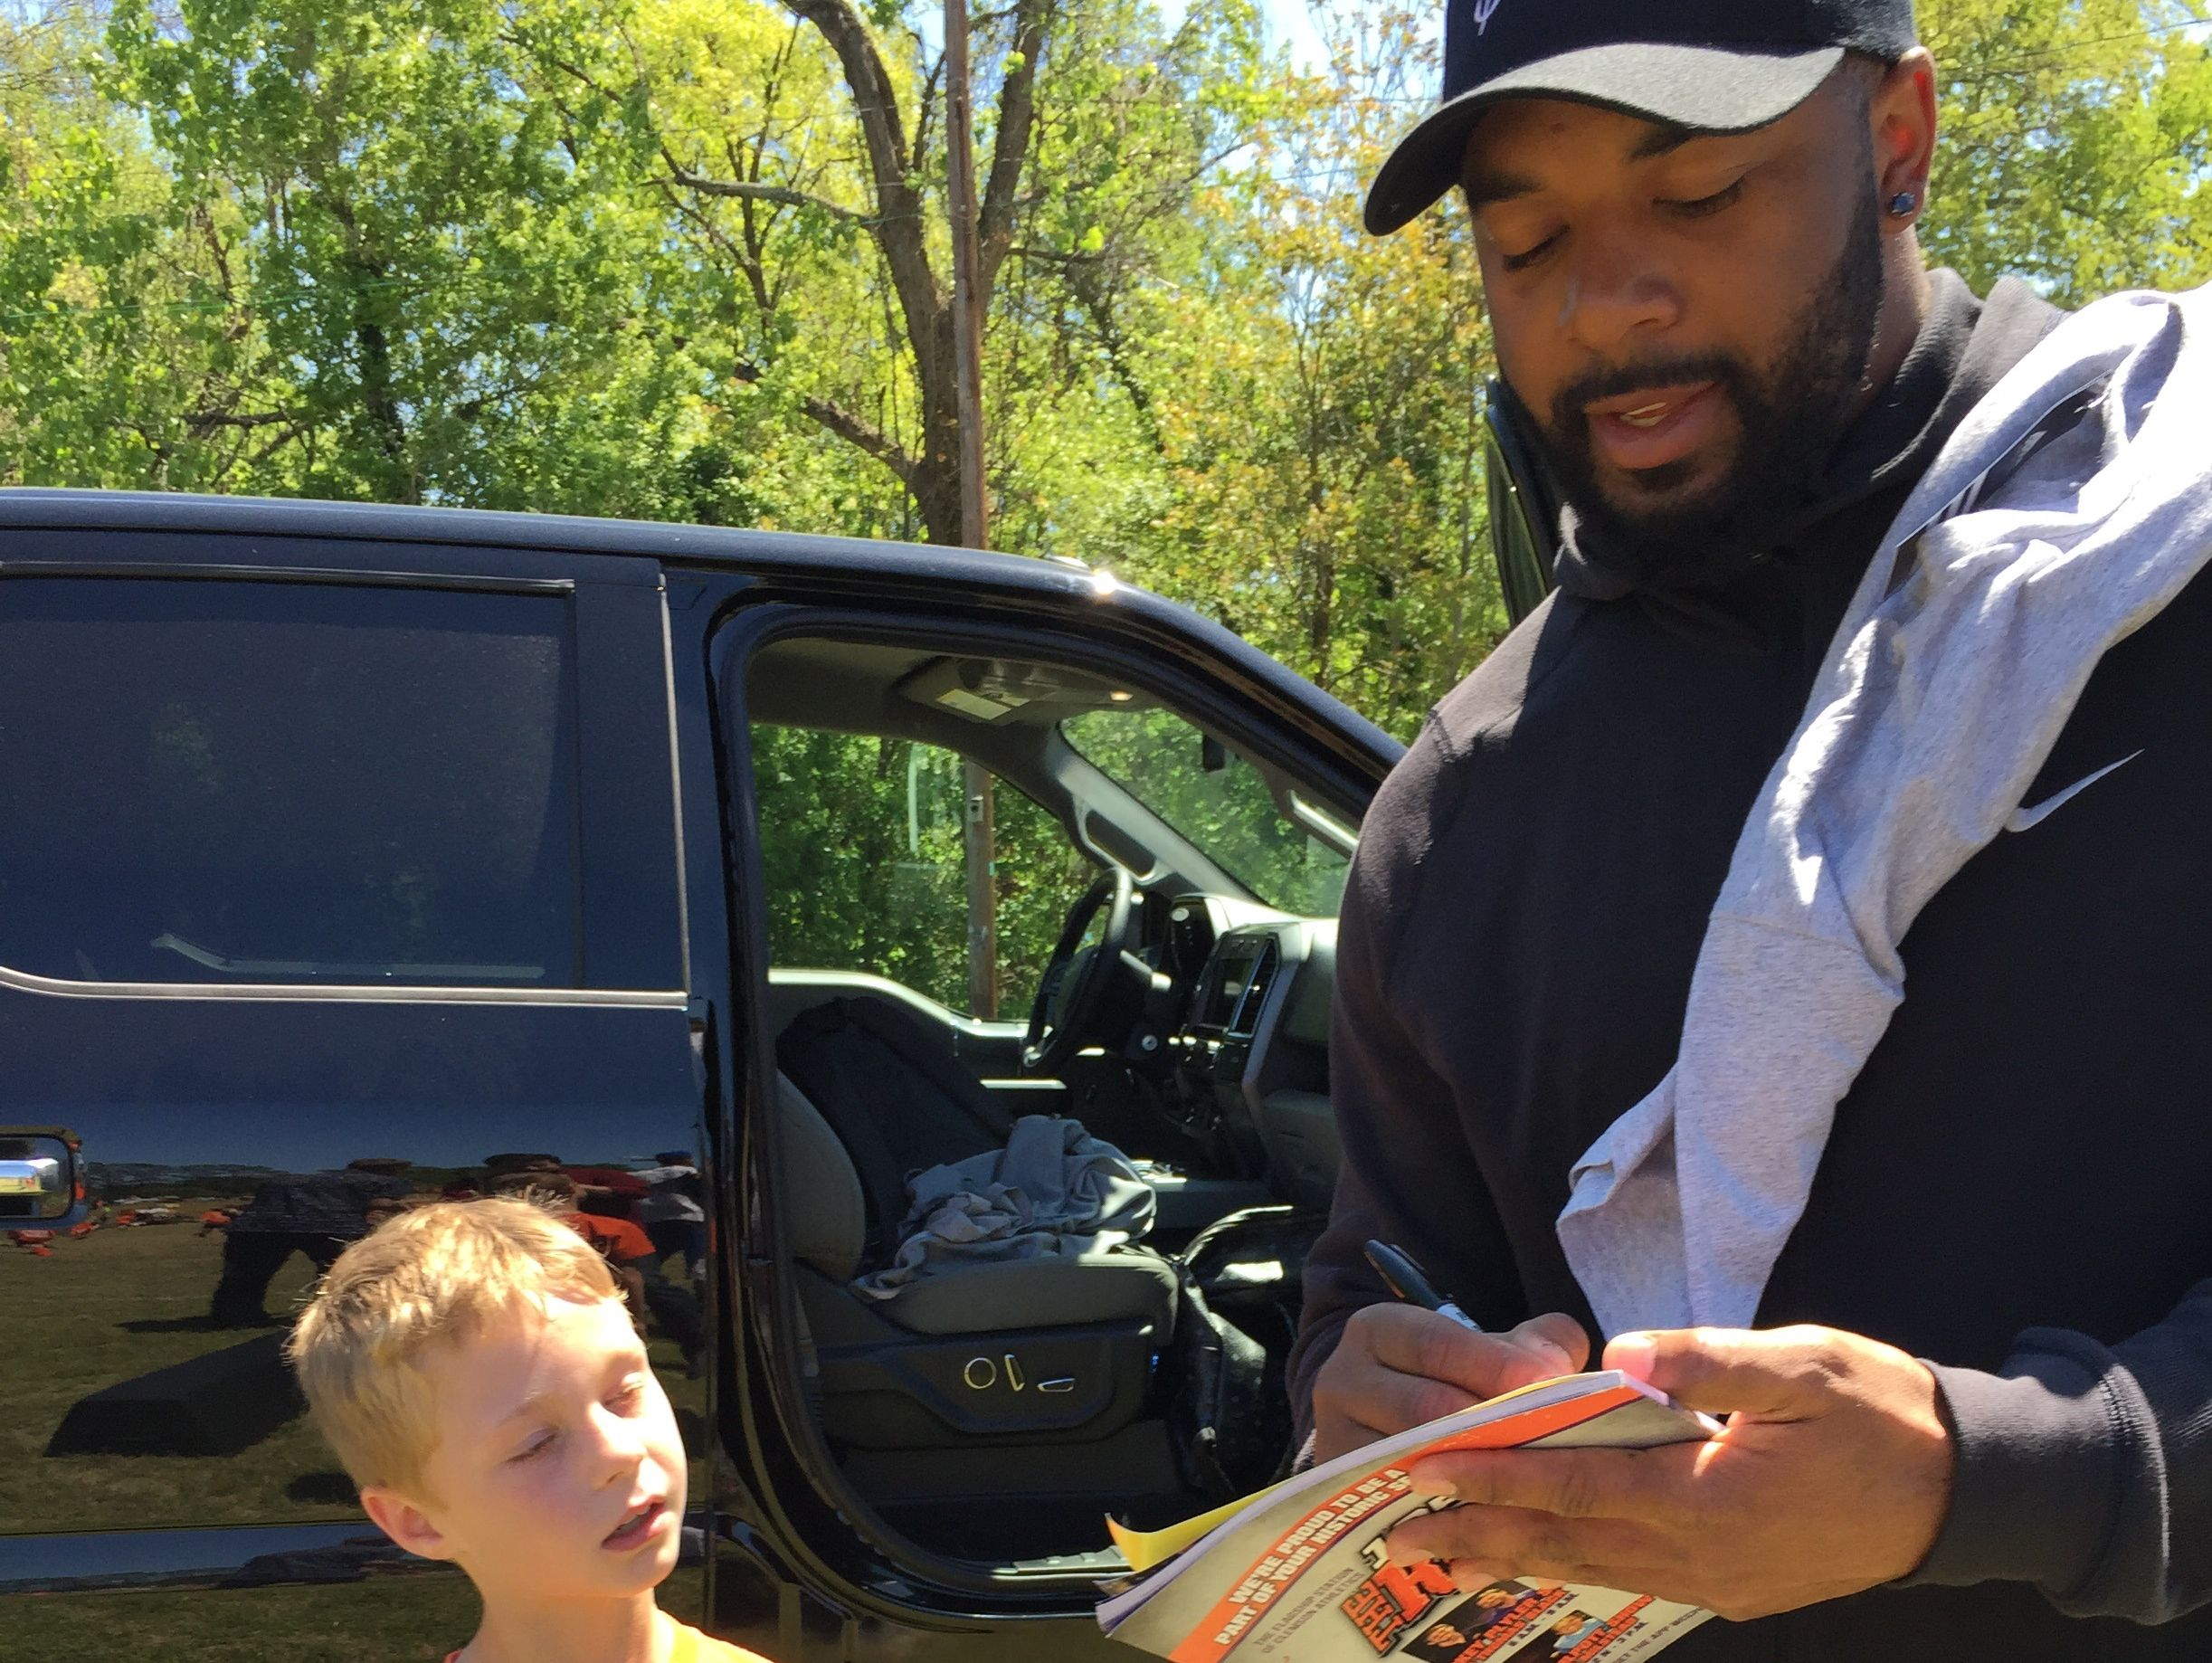 Former Clemson quarterback Tajh Boyd signs an autograph for a young man during his recent football camp in Greenville.